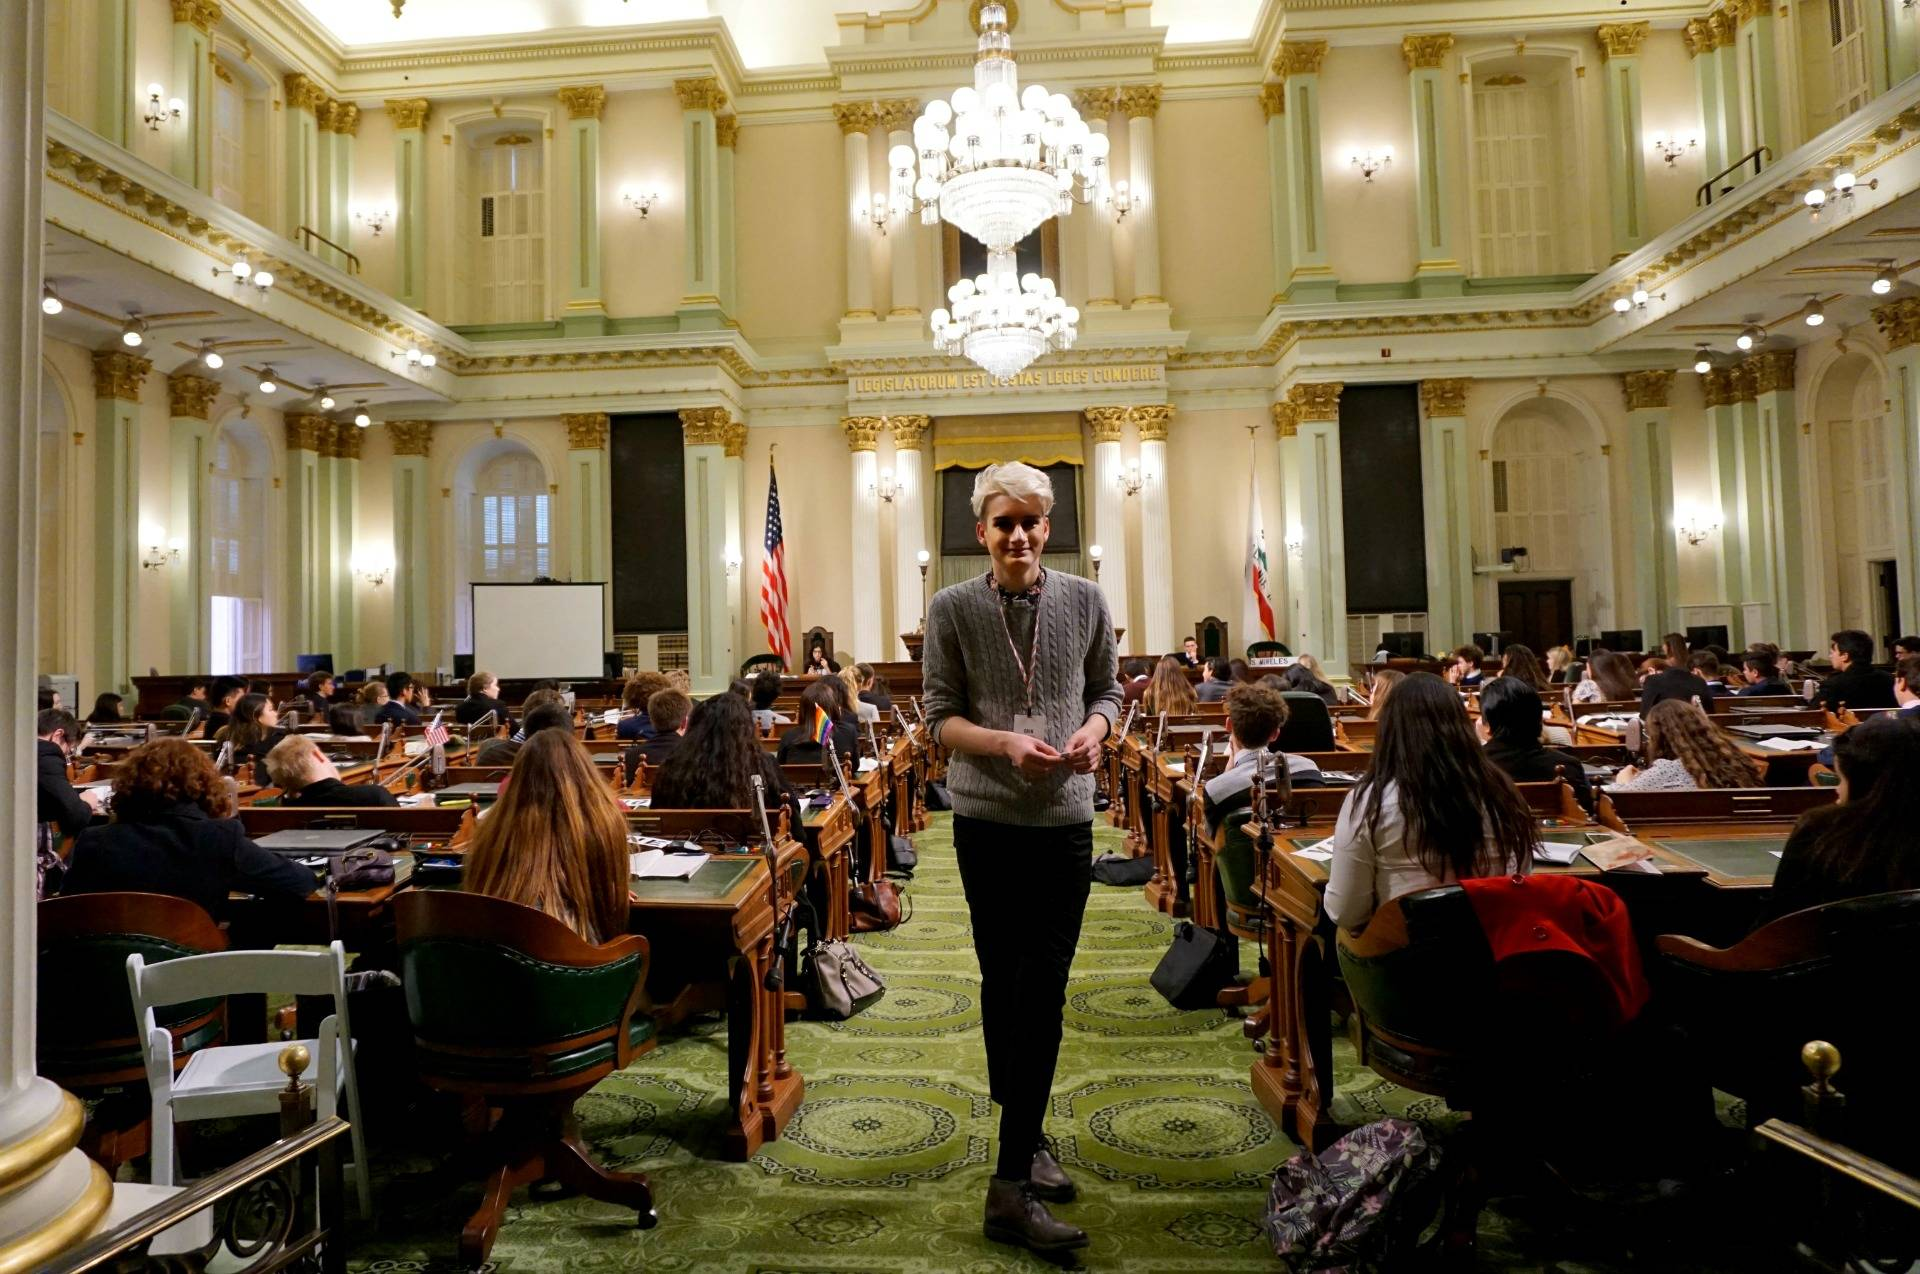 A page passes notes between members of the Assembly. Amanda Font/KQED